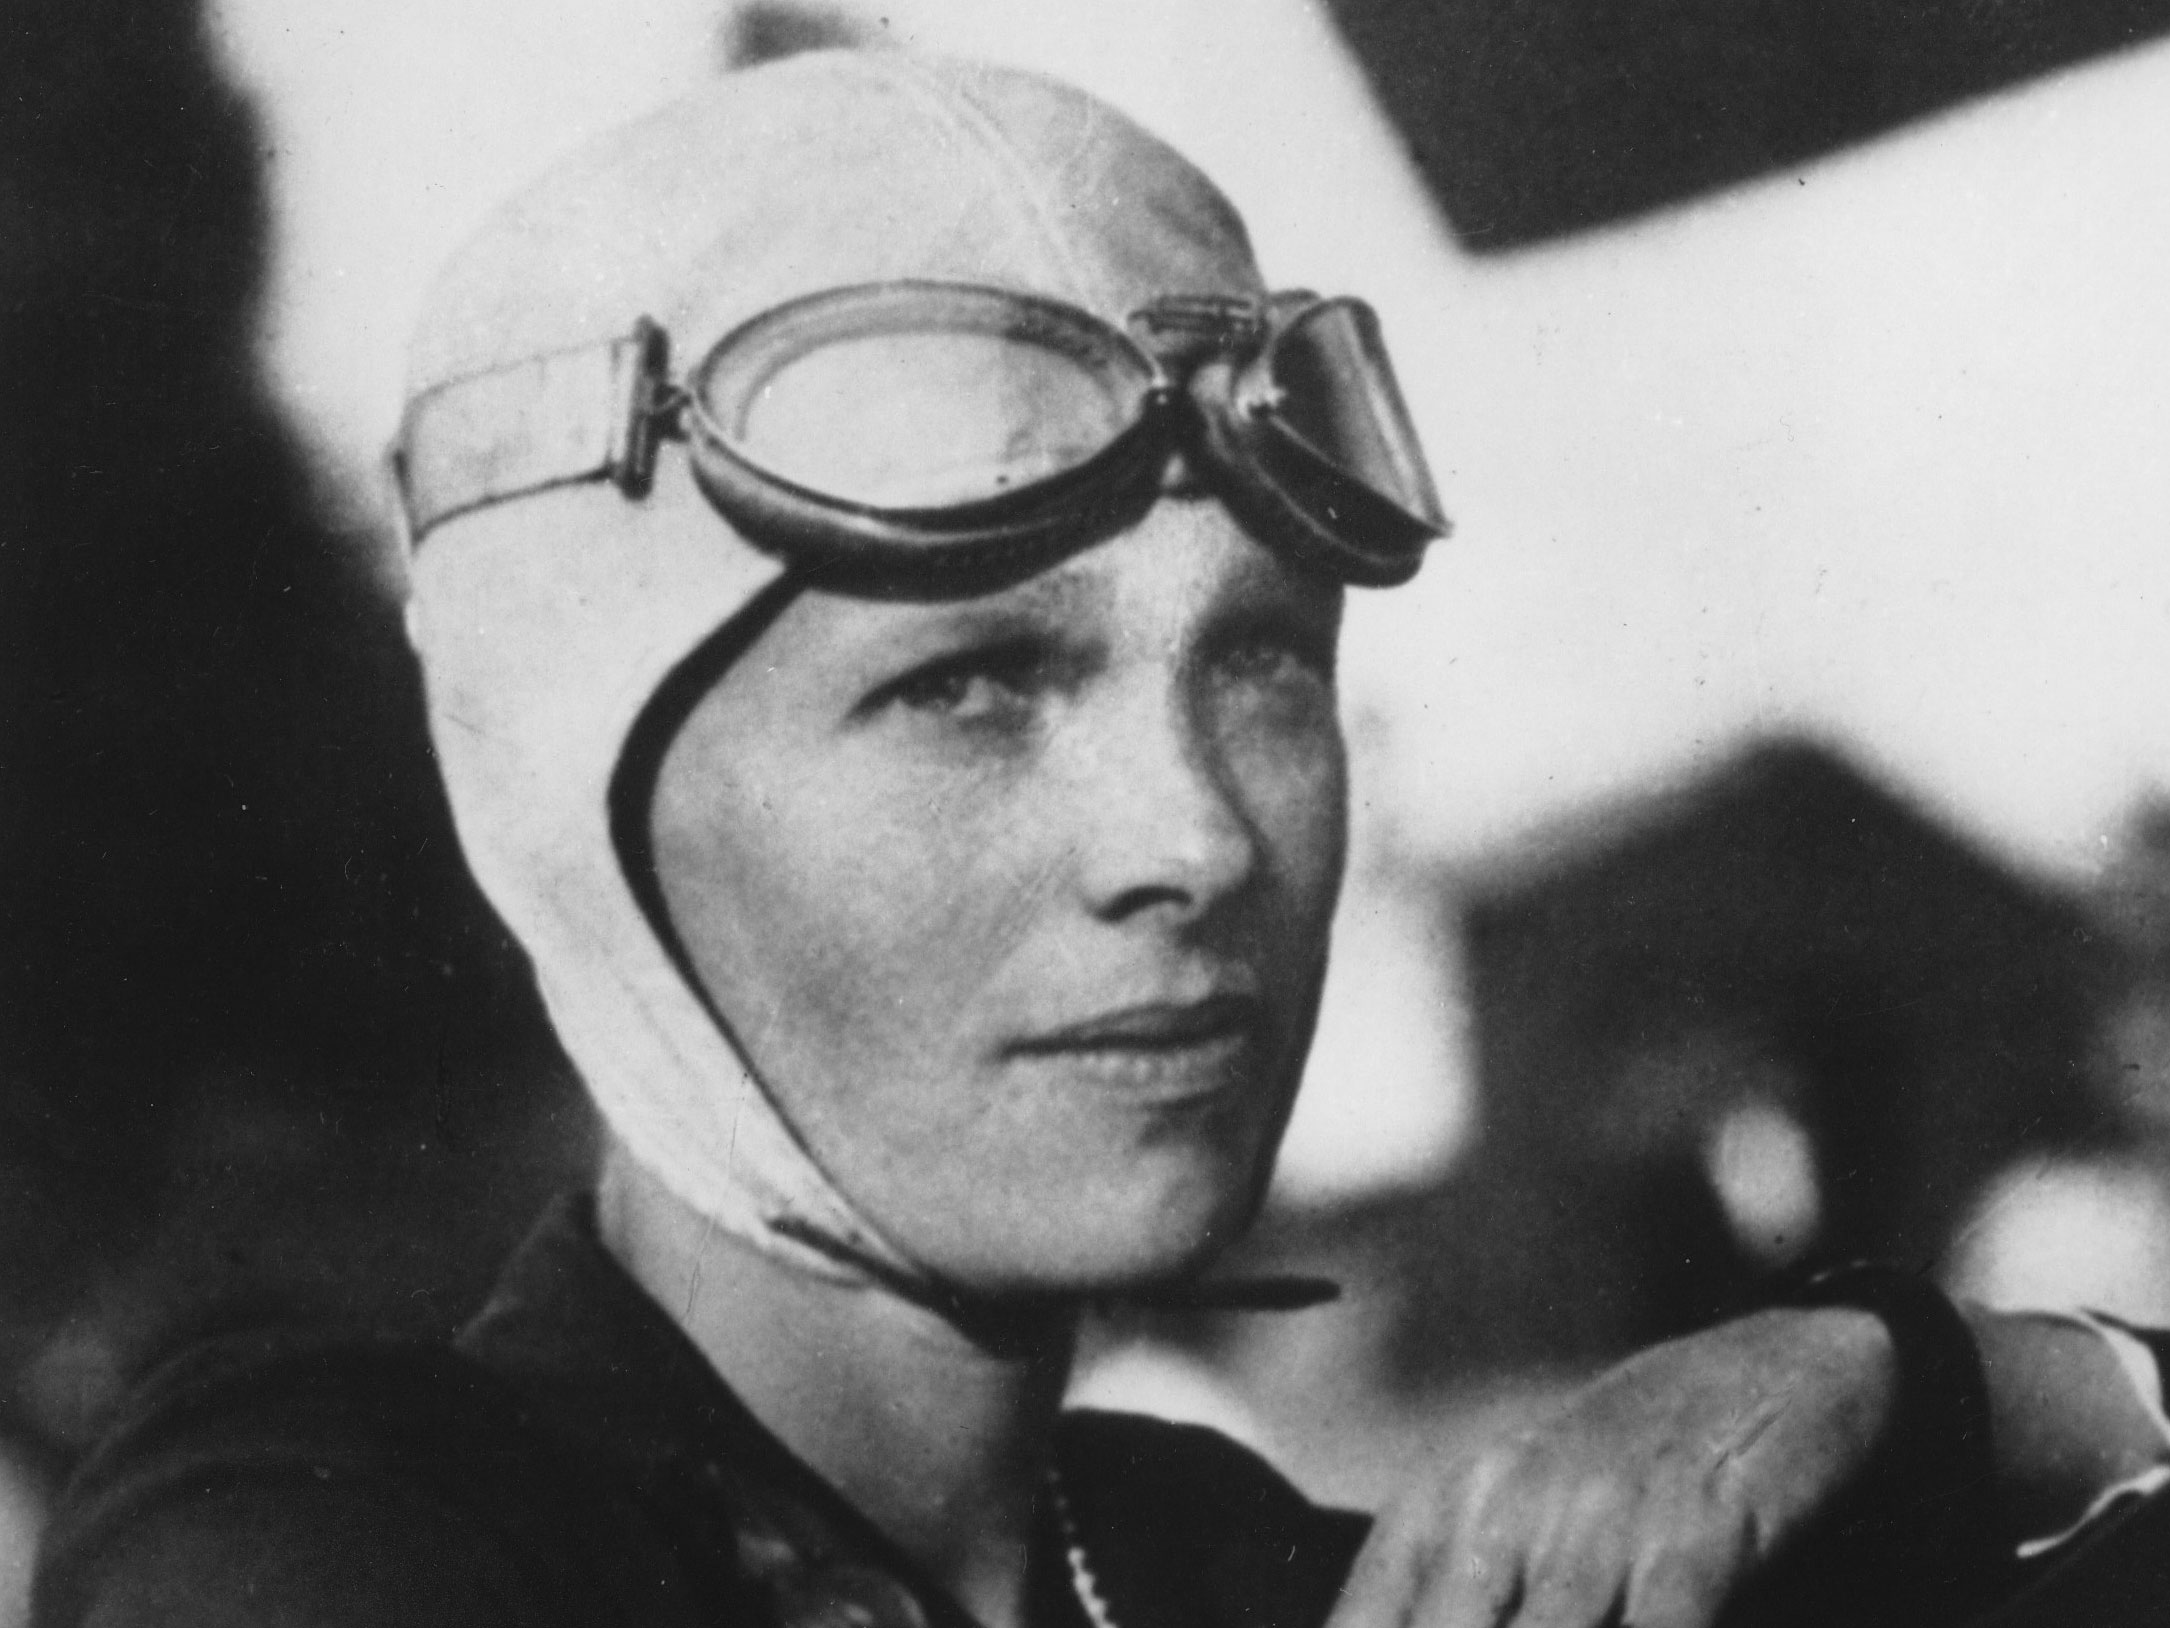 New Photo 6 Sizes! Amelia Earhart Shortly before 1st Attempt at World Flight